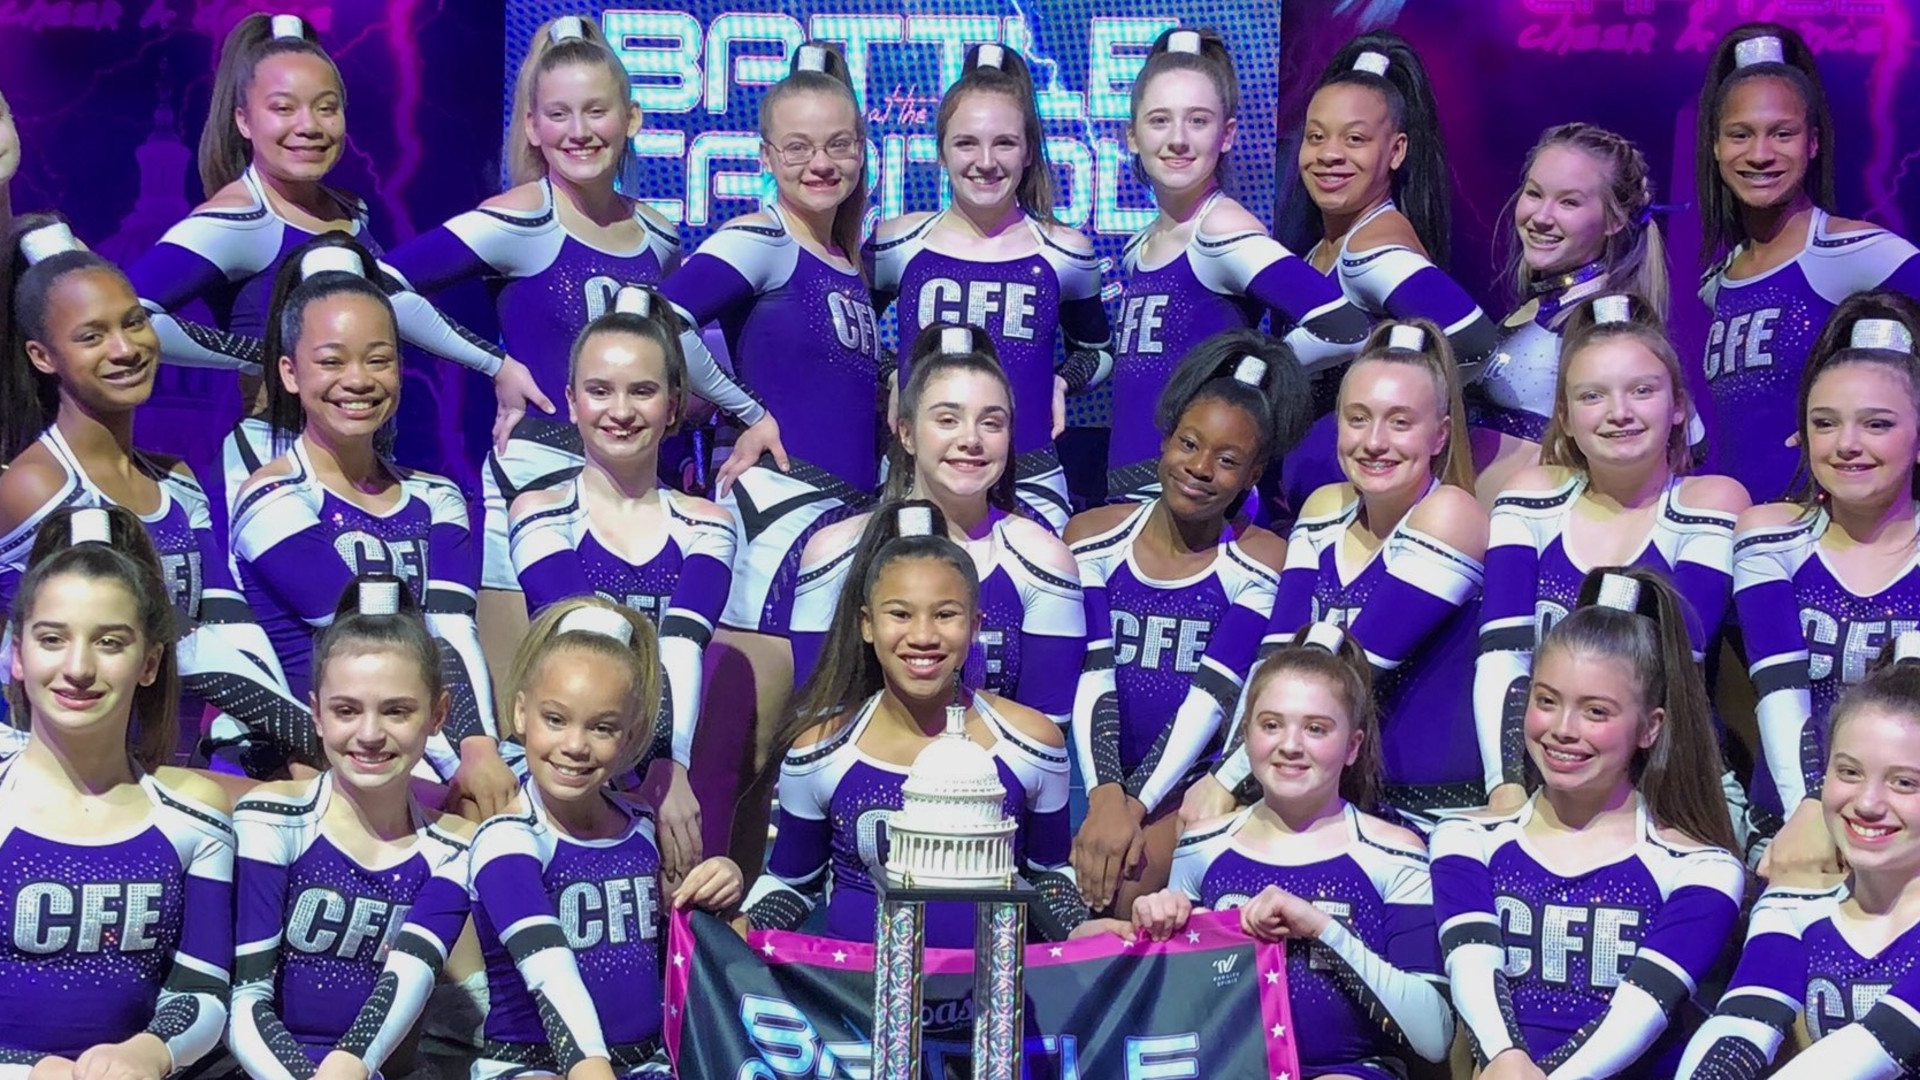 <style> v {   text-shadow: 2px 2px 8px #1e2a55; } </style><v><strong>Cheer Force Elite: Building a Legacy, One Champion at a Time</strong></v>